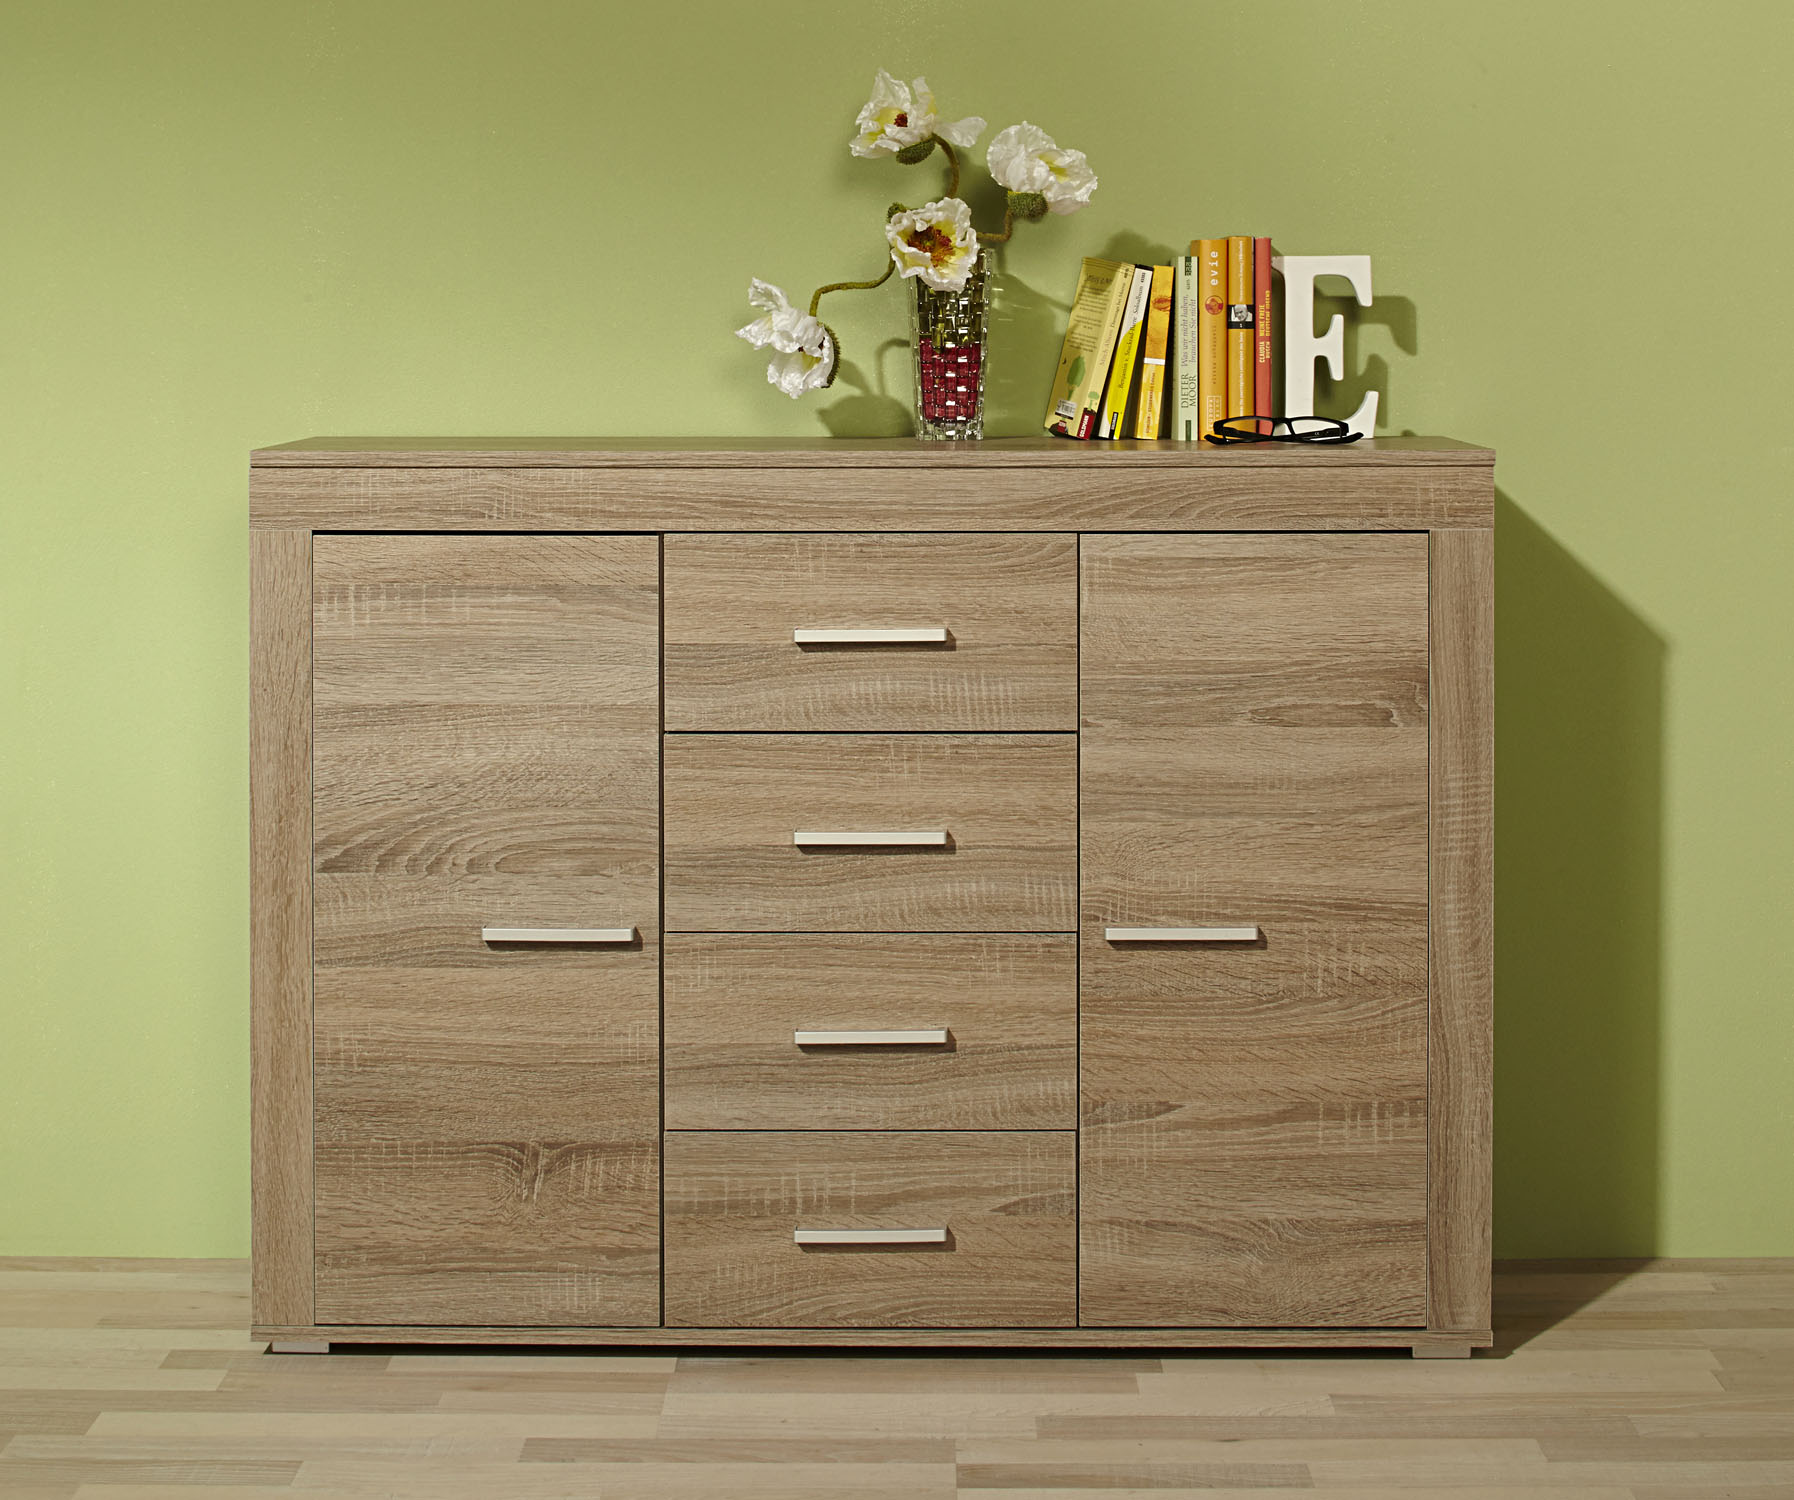 kommode sideboard highboard anrichte schrank kernbuche eiche sonoma tr ffel sand ebay. Black Bedroom Furniture Sets. Home Design Ideas